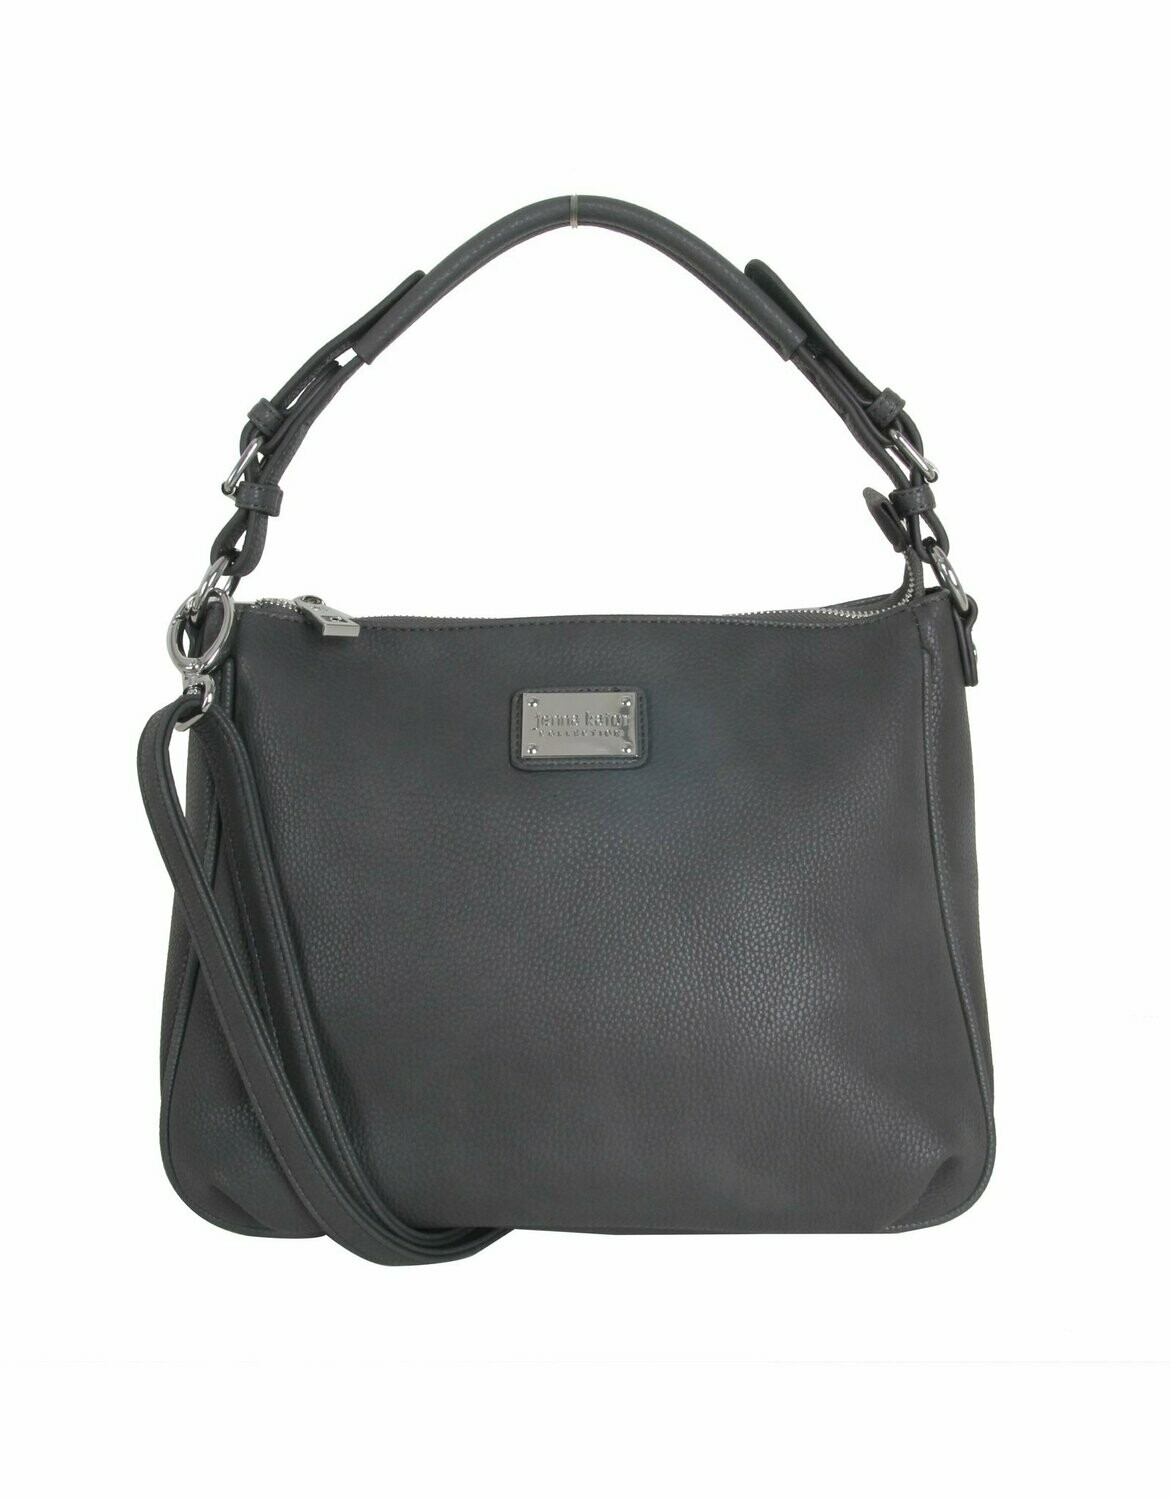 Jenna Kator Spring Lake Handbag - 2 Colors